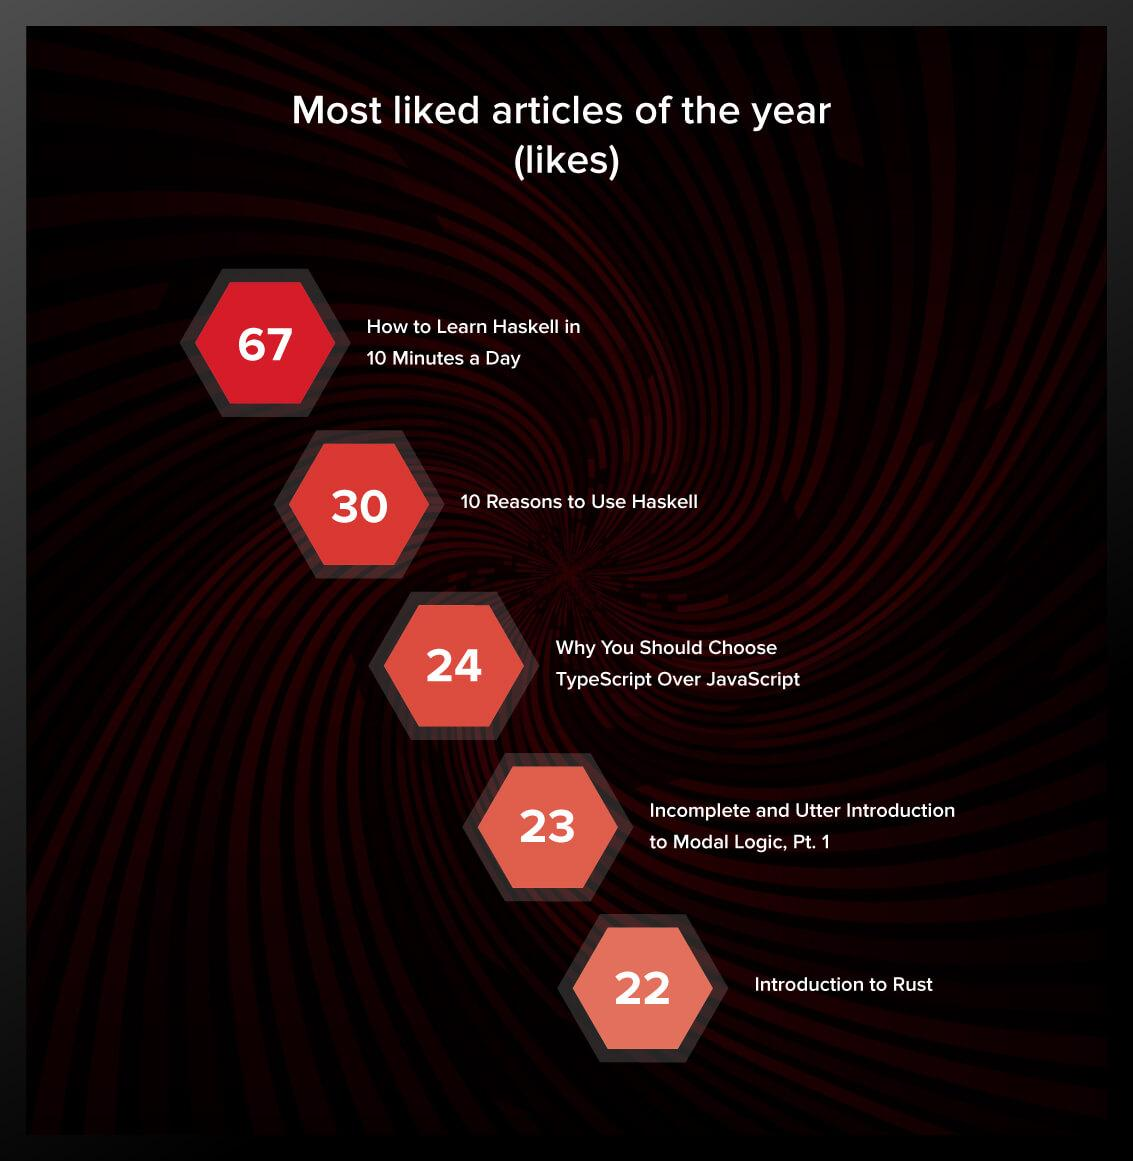 Most liked articles